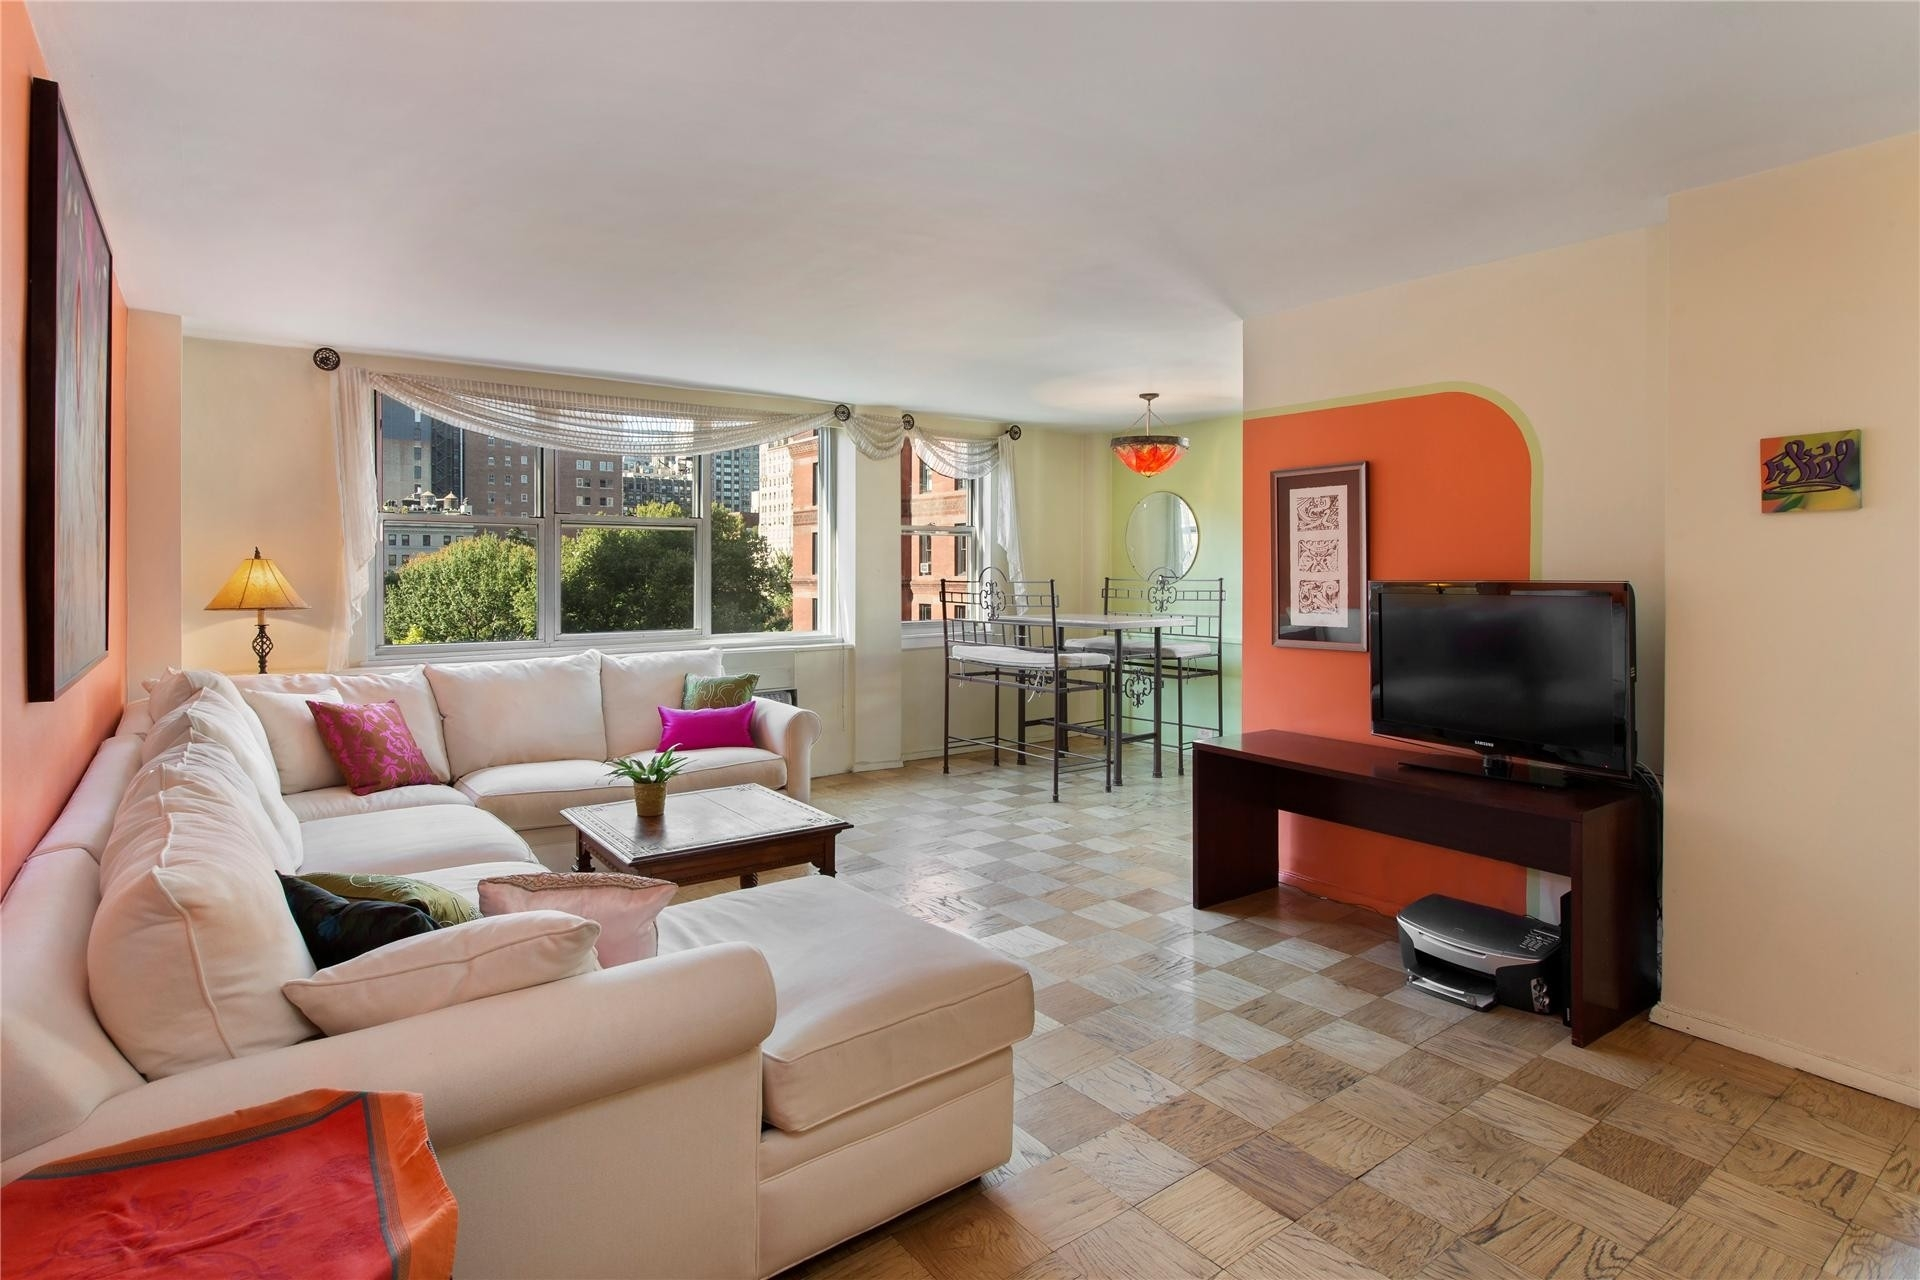 Property at 32 Gramercy Park South, 8L New York